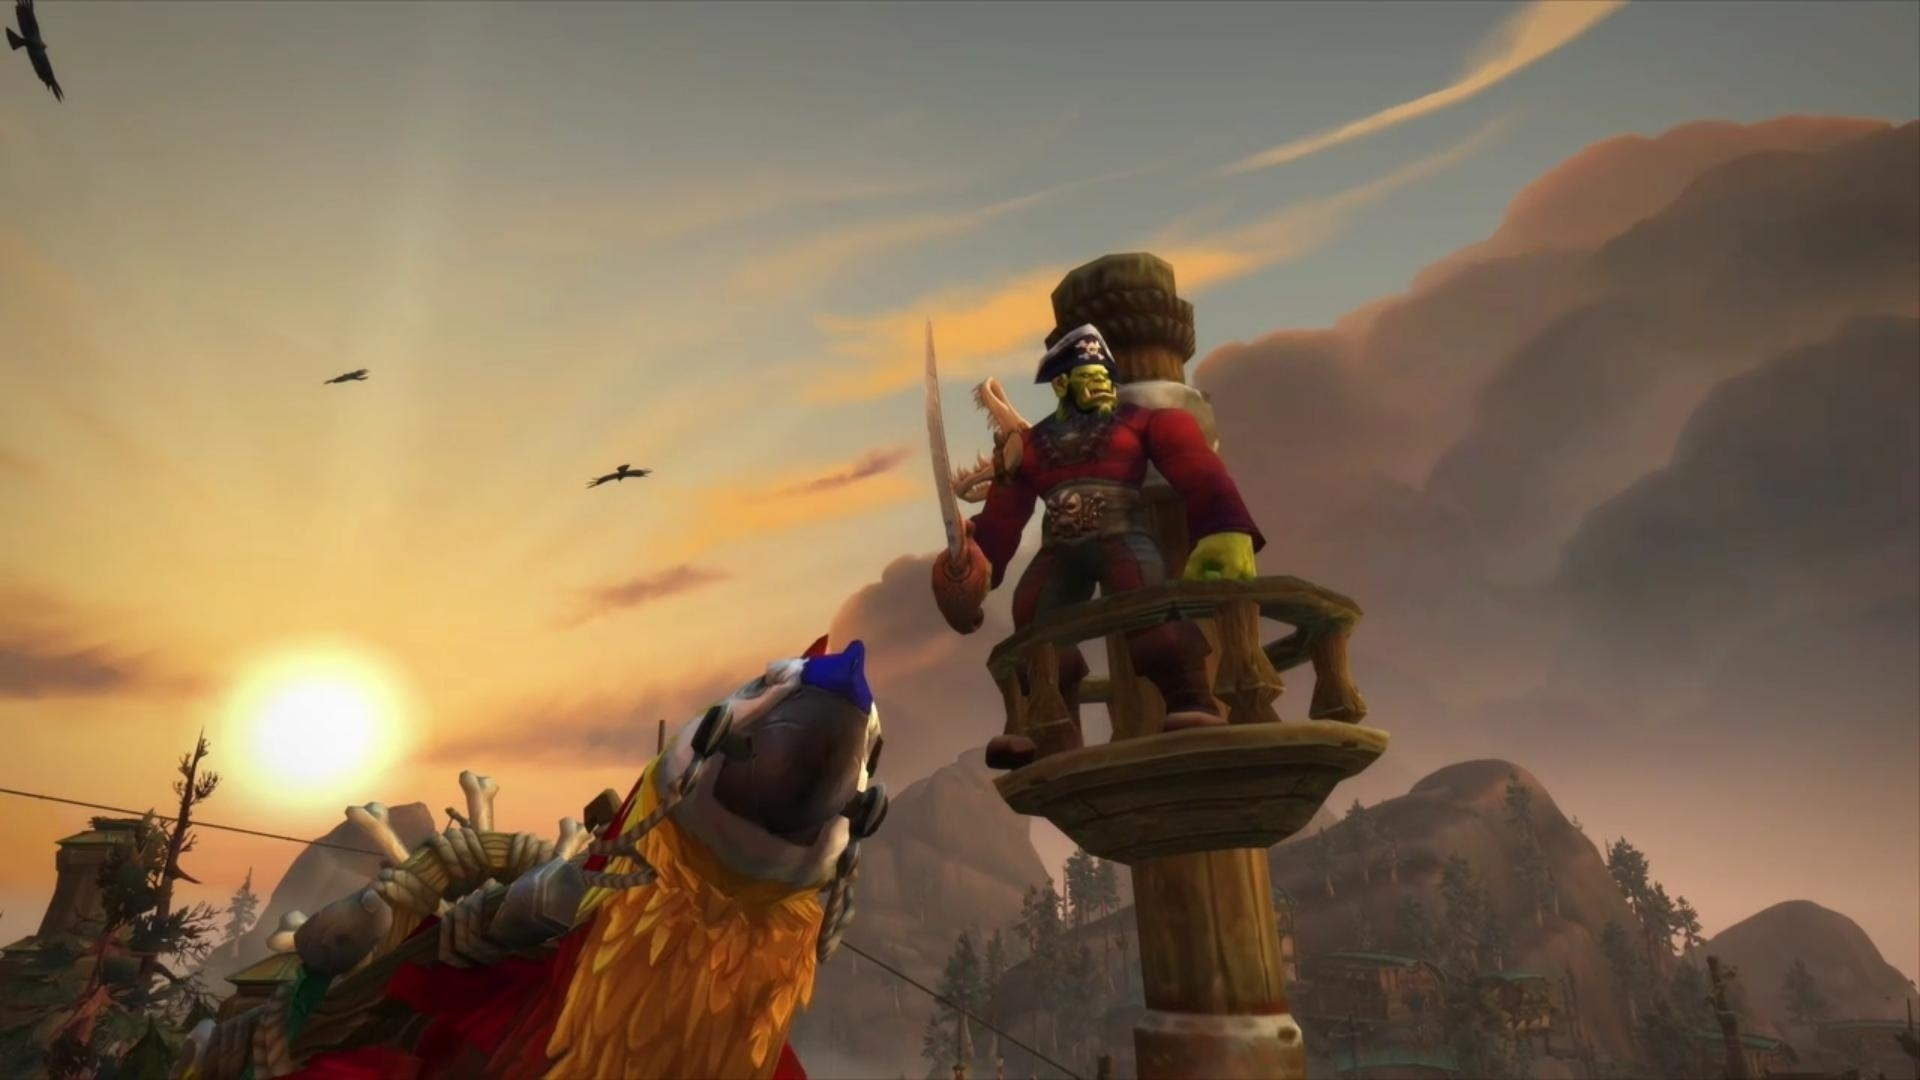 3d Server Wallpaper Hearthstone References In Freehold Patches The Pirate